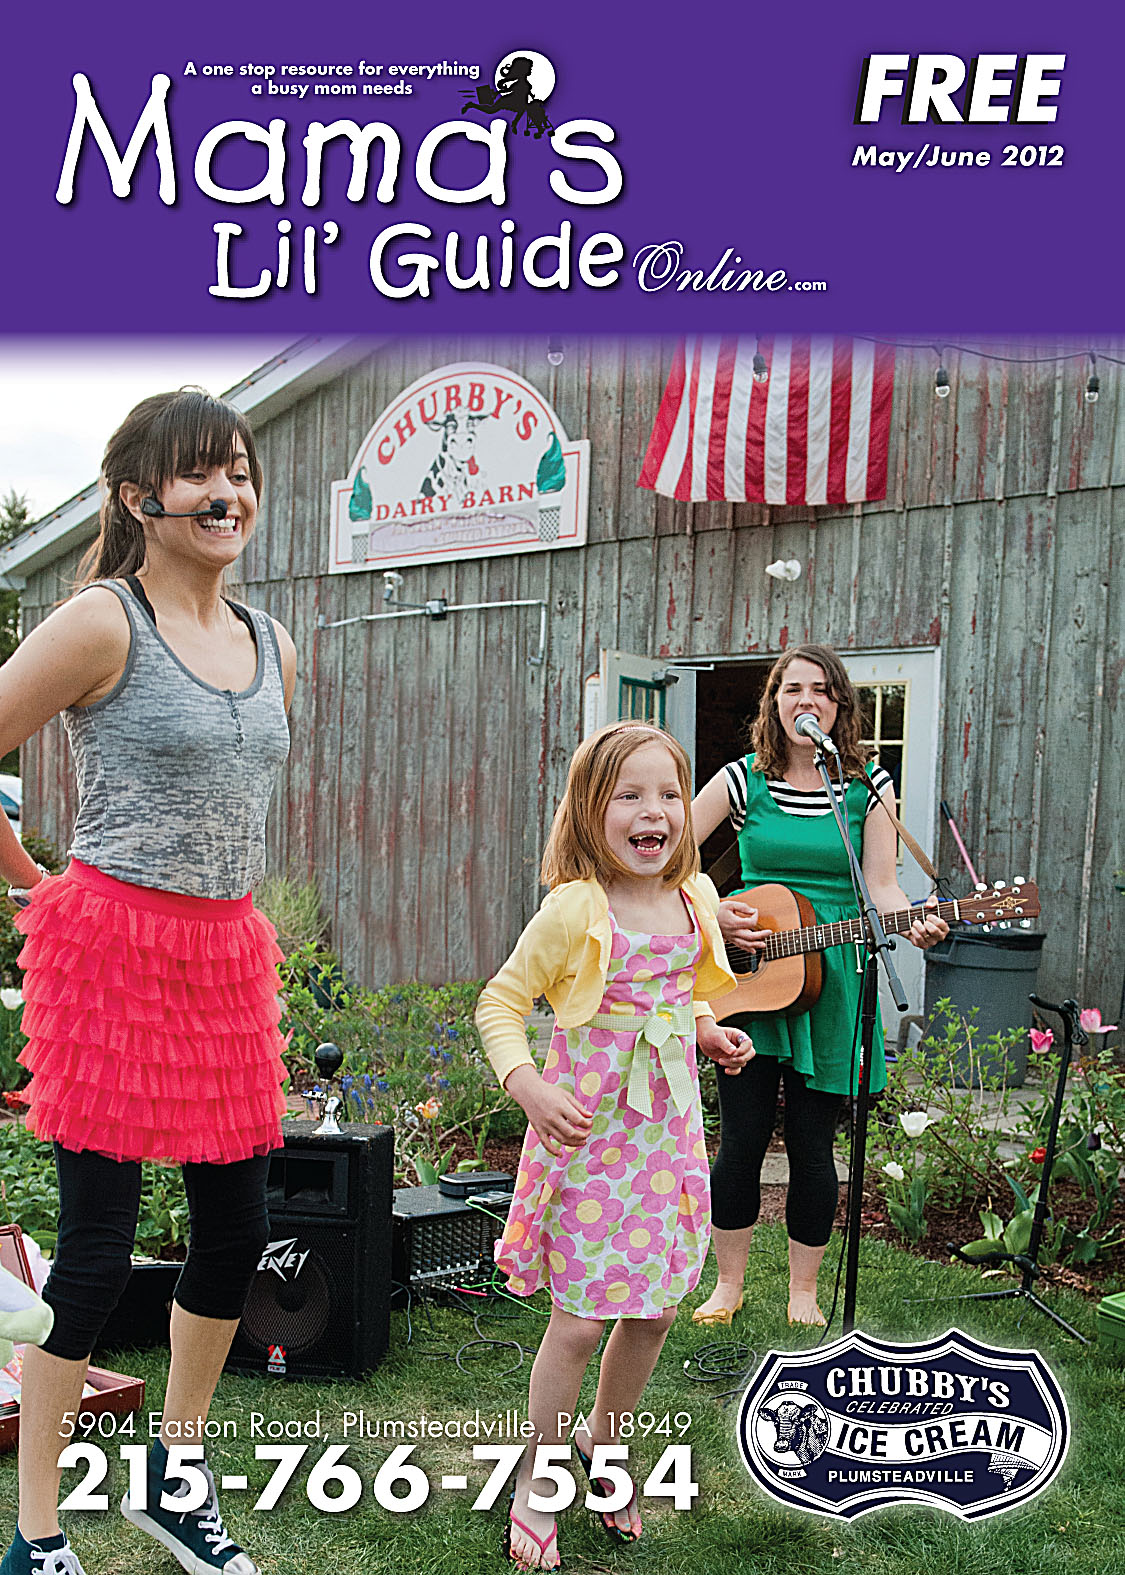 Mamas Lil' Guide May/June 2012 Issue